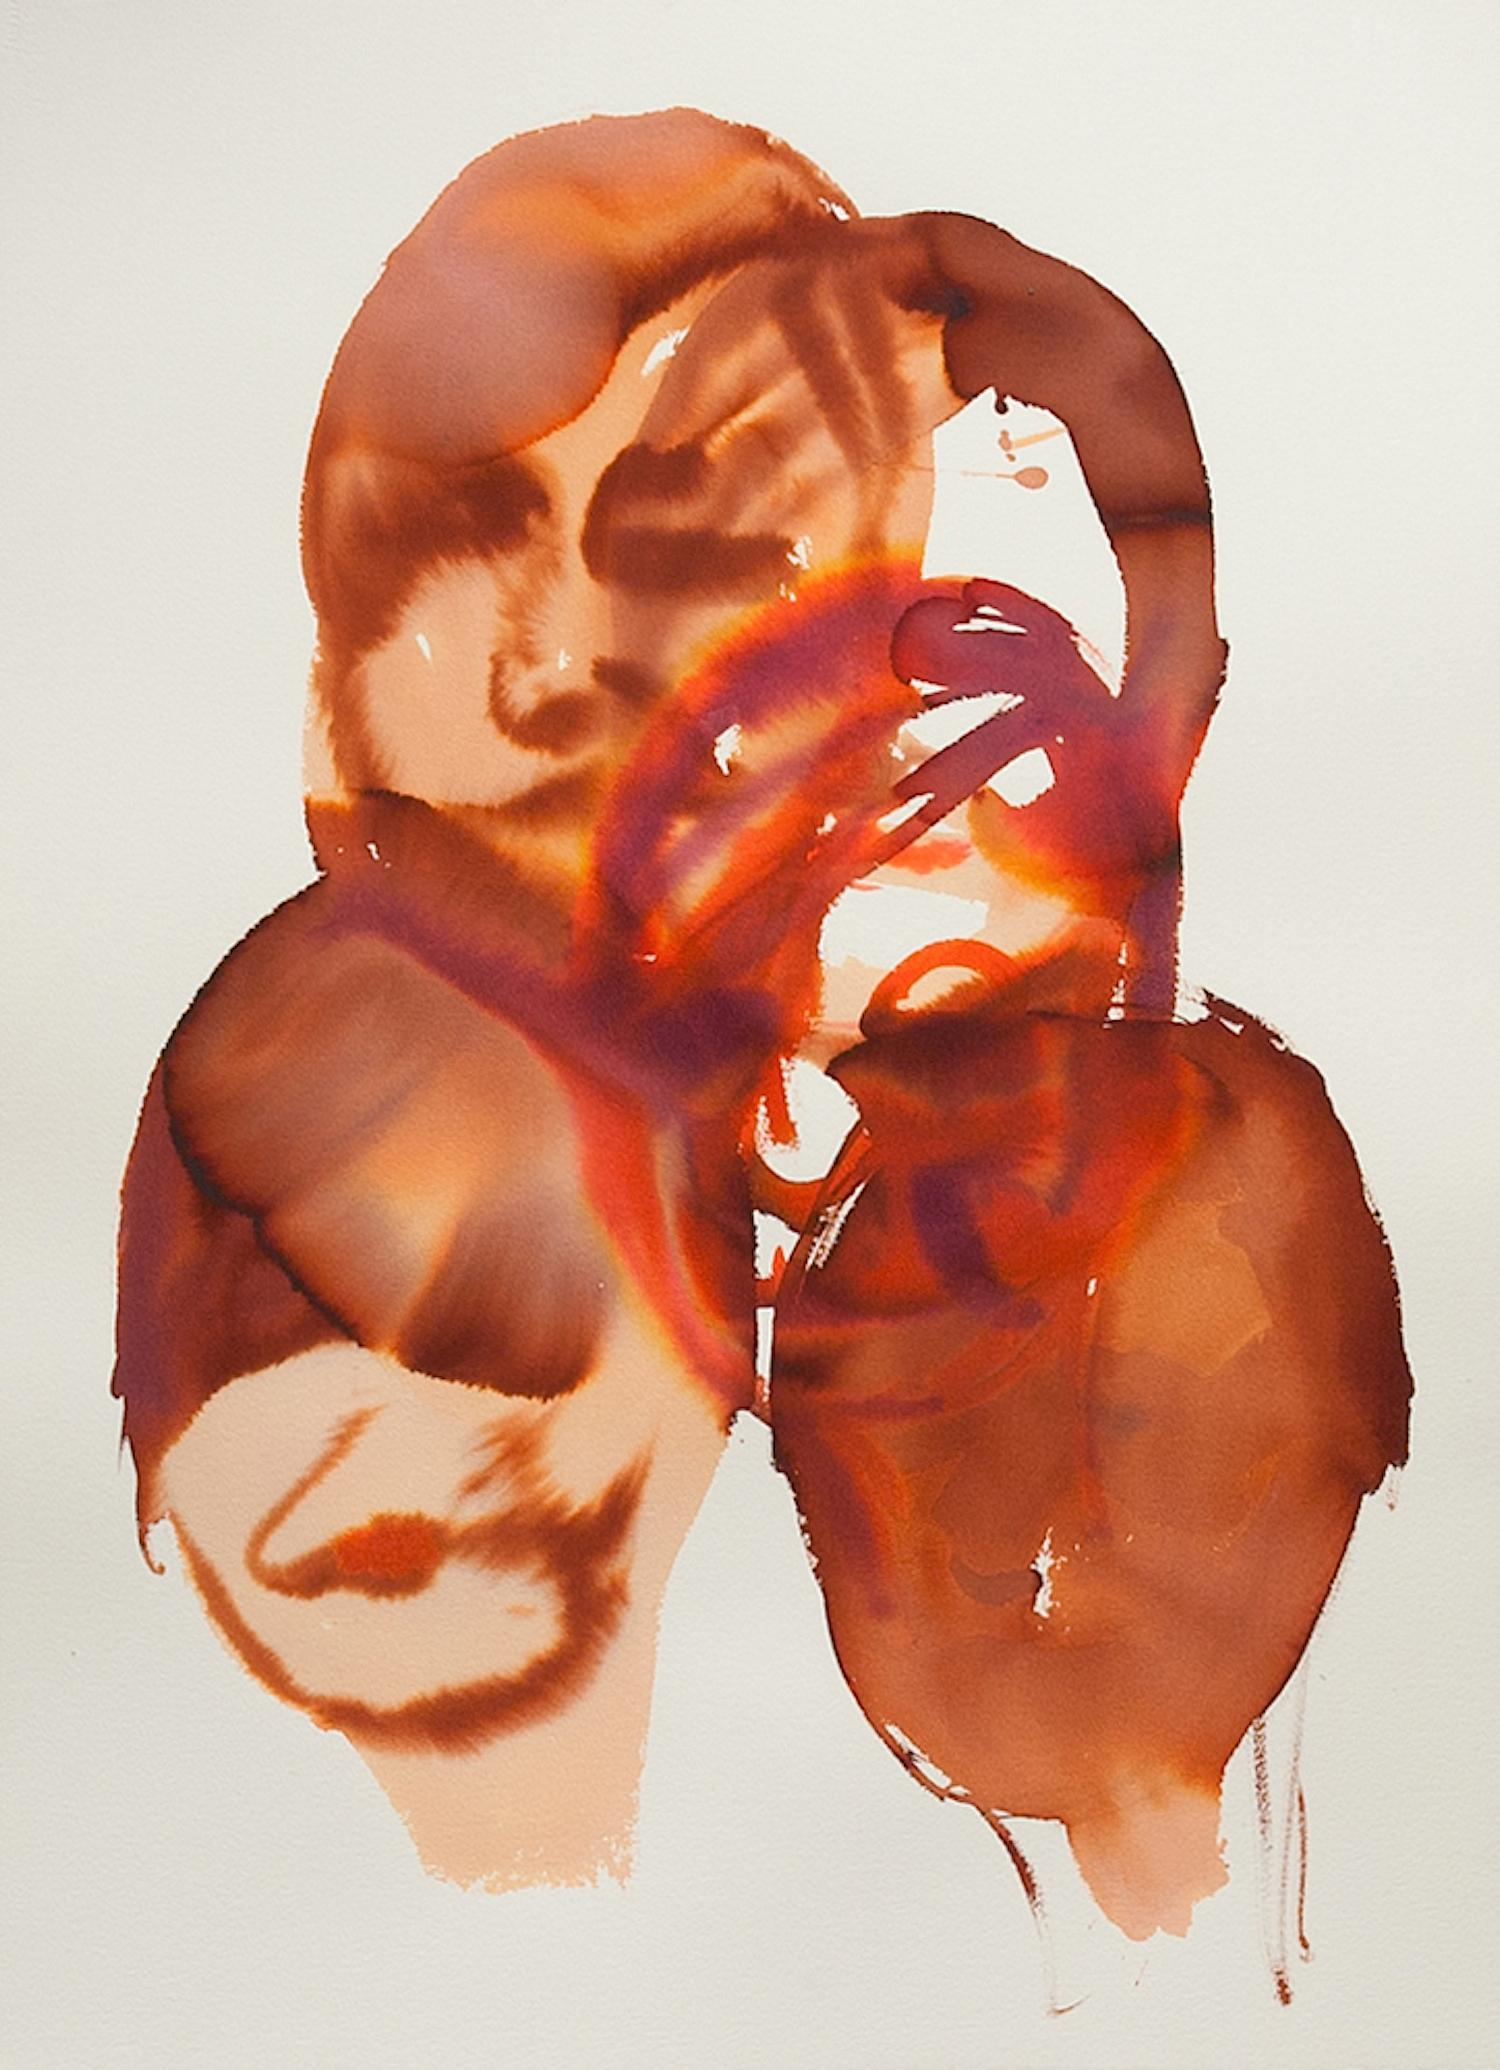 The Head Of A Woman Echo - Figurative Watercolor Painting, New Expressionism